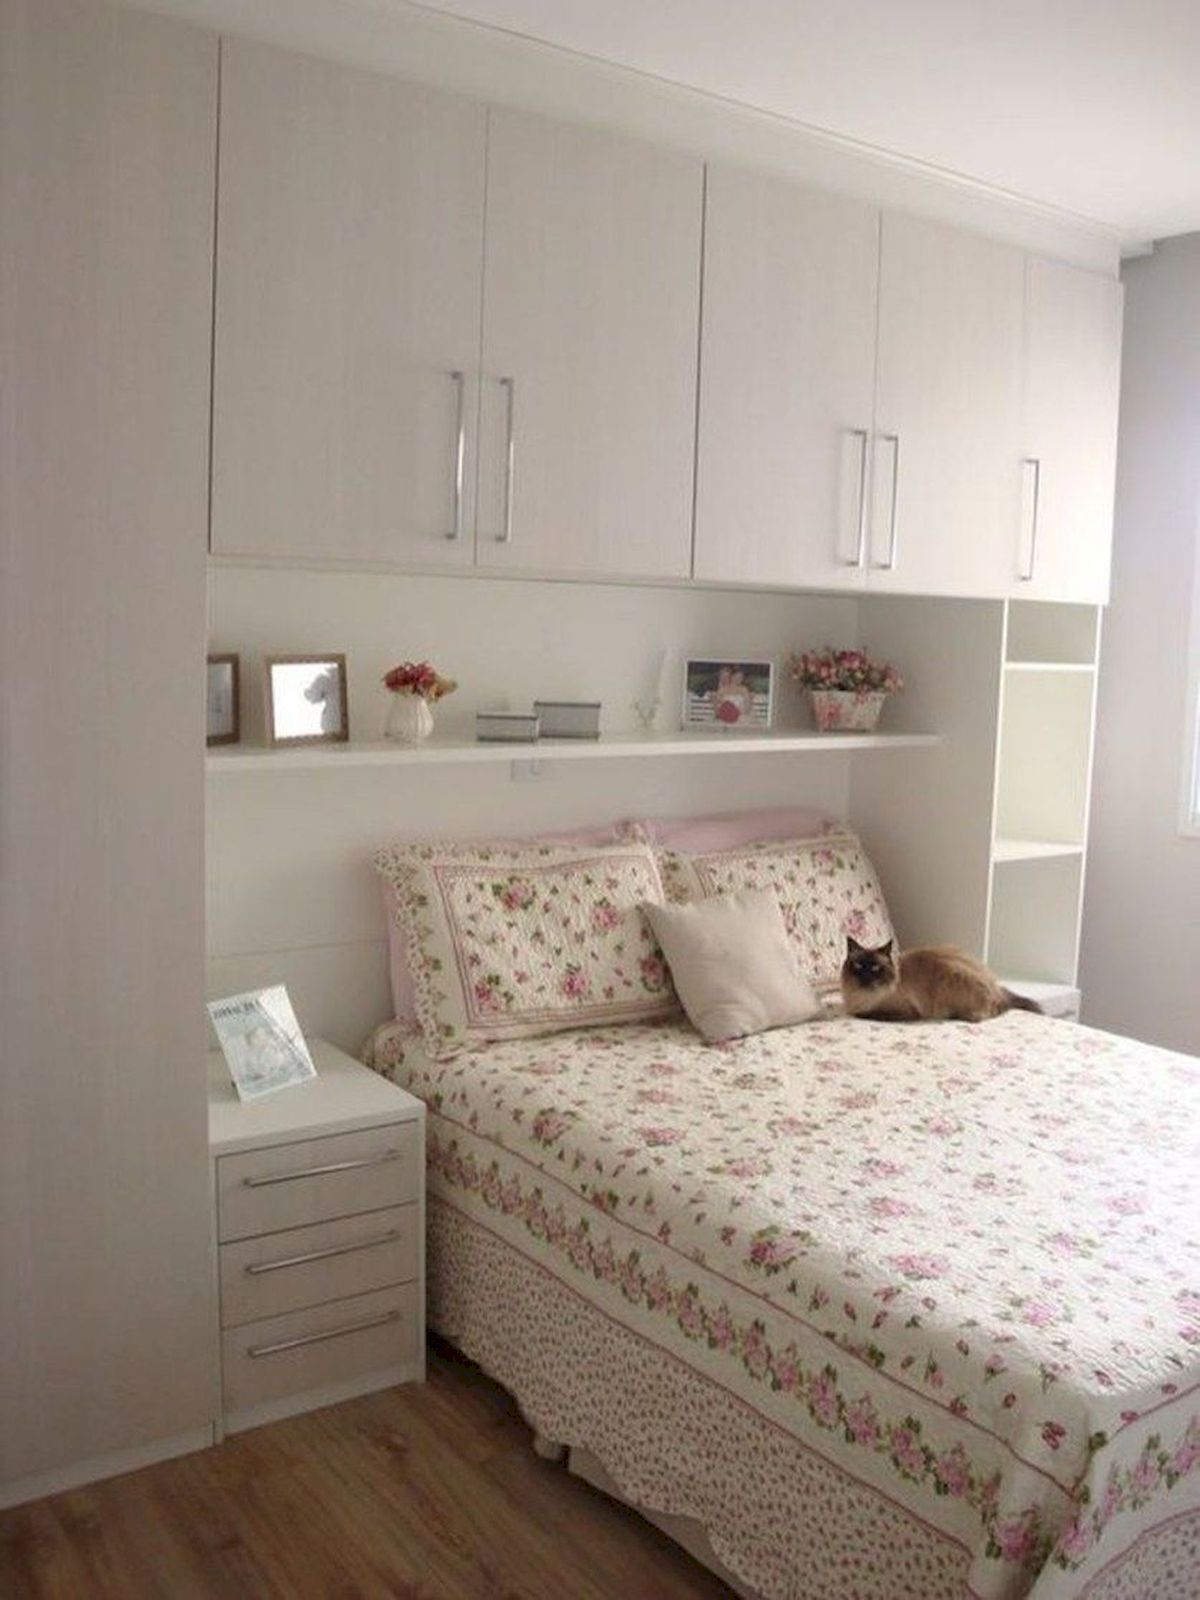 Small Bedroom Decorating Ideas On A Budget In 2020 Small Bedroom Remodel Bedroom Small Master Bedroom